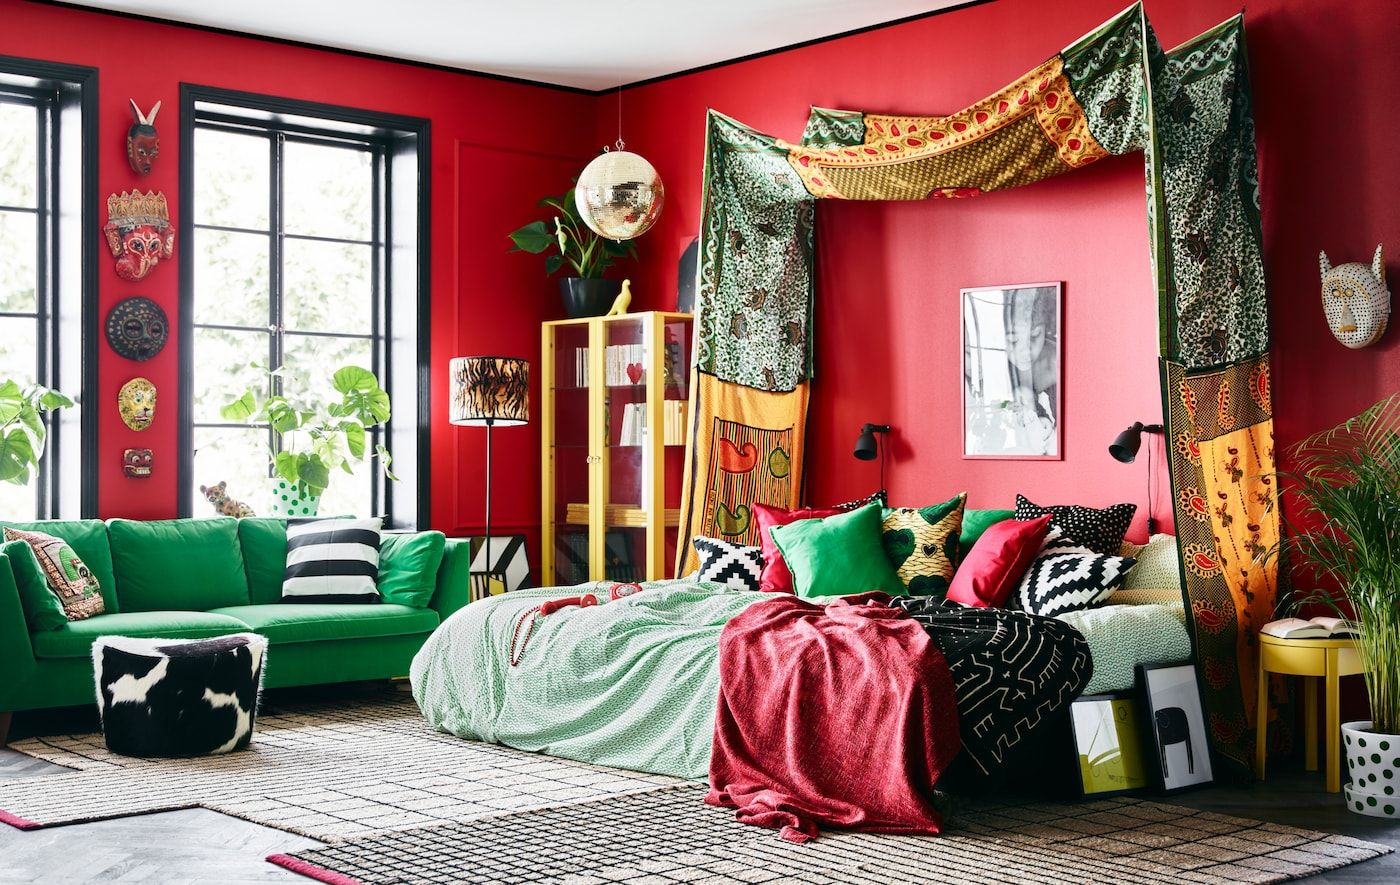 An Ikea Stylist S Dream Bedroom With Images Eclectic Bedroom Bedroom Setup Apartment Decor